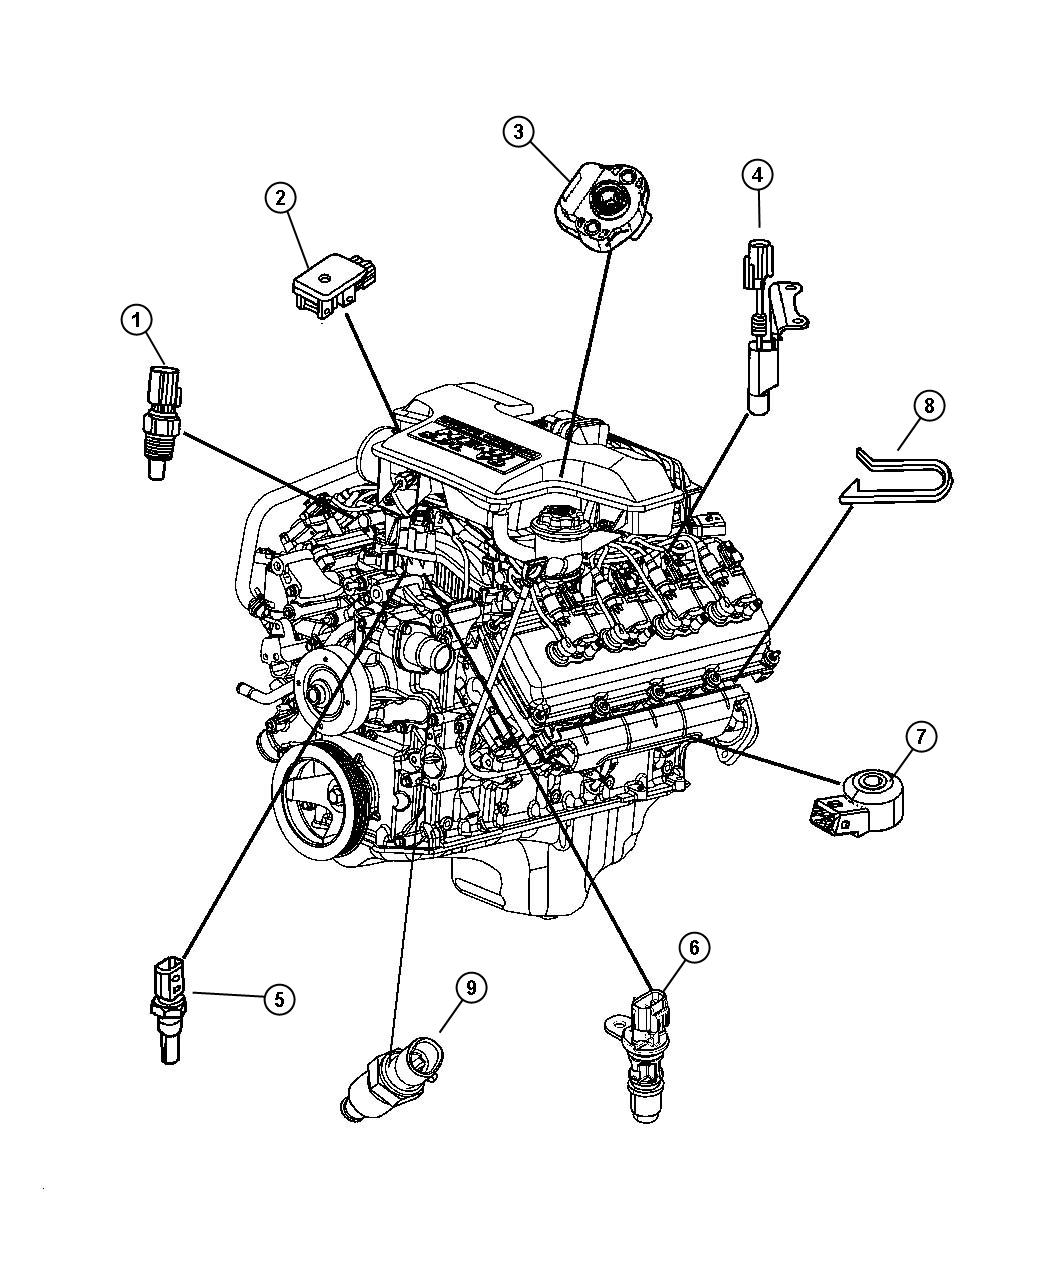 Dodge Ram O2 Sensor Wiring Diagram Database